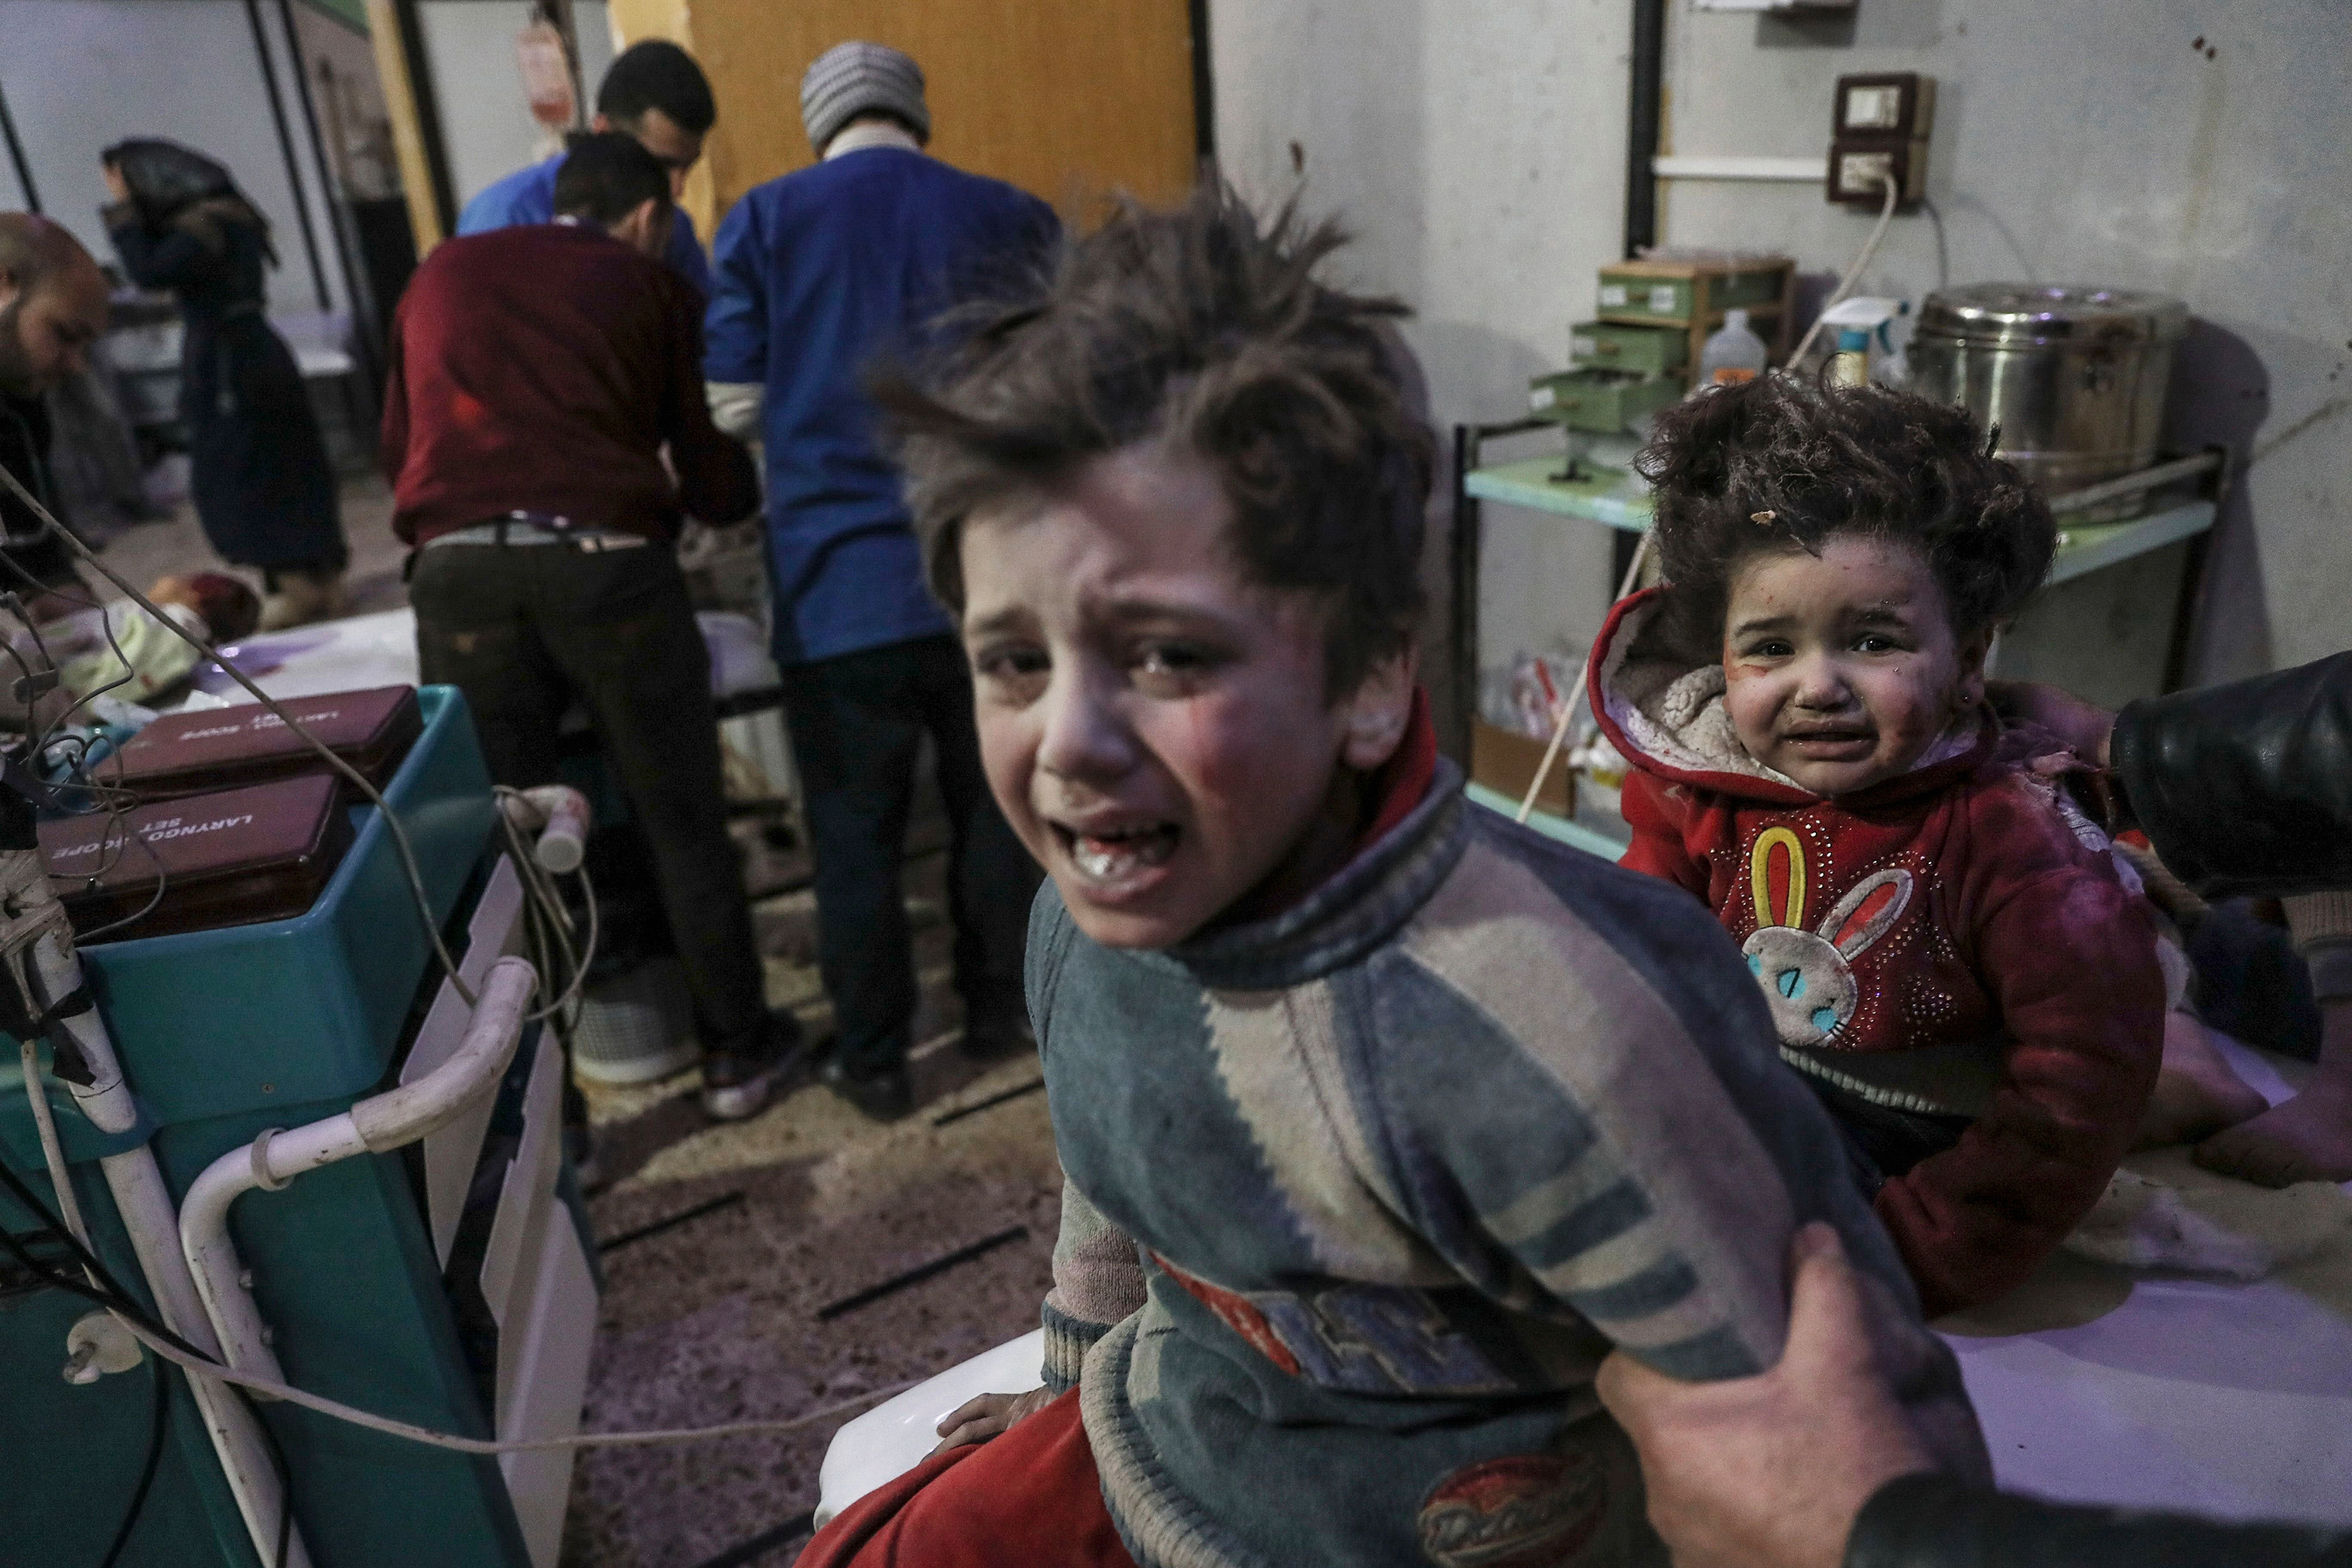 Injured children are treated at a hospital in Douma, a city in the Damascus district of eastern Ghouta, on Feb. 19